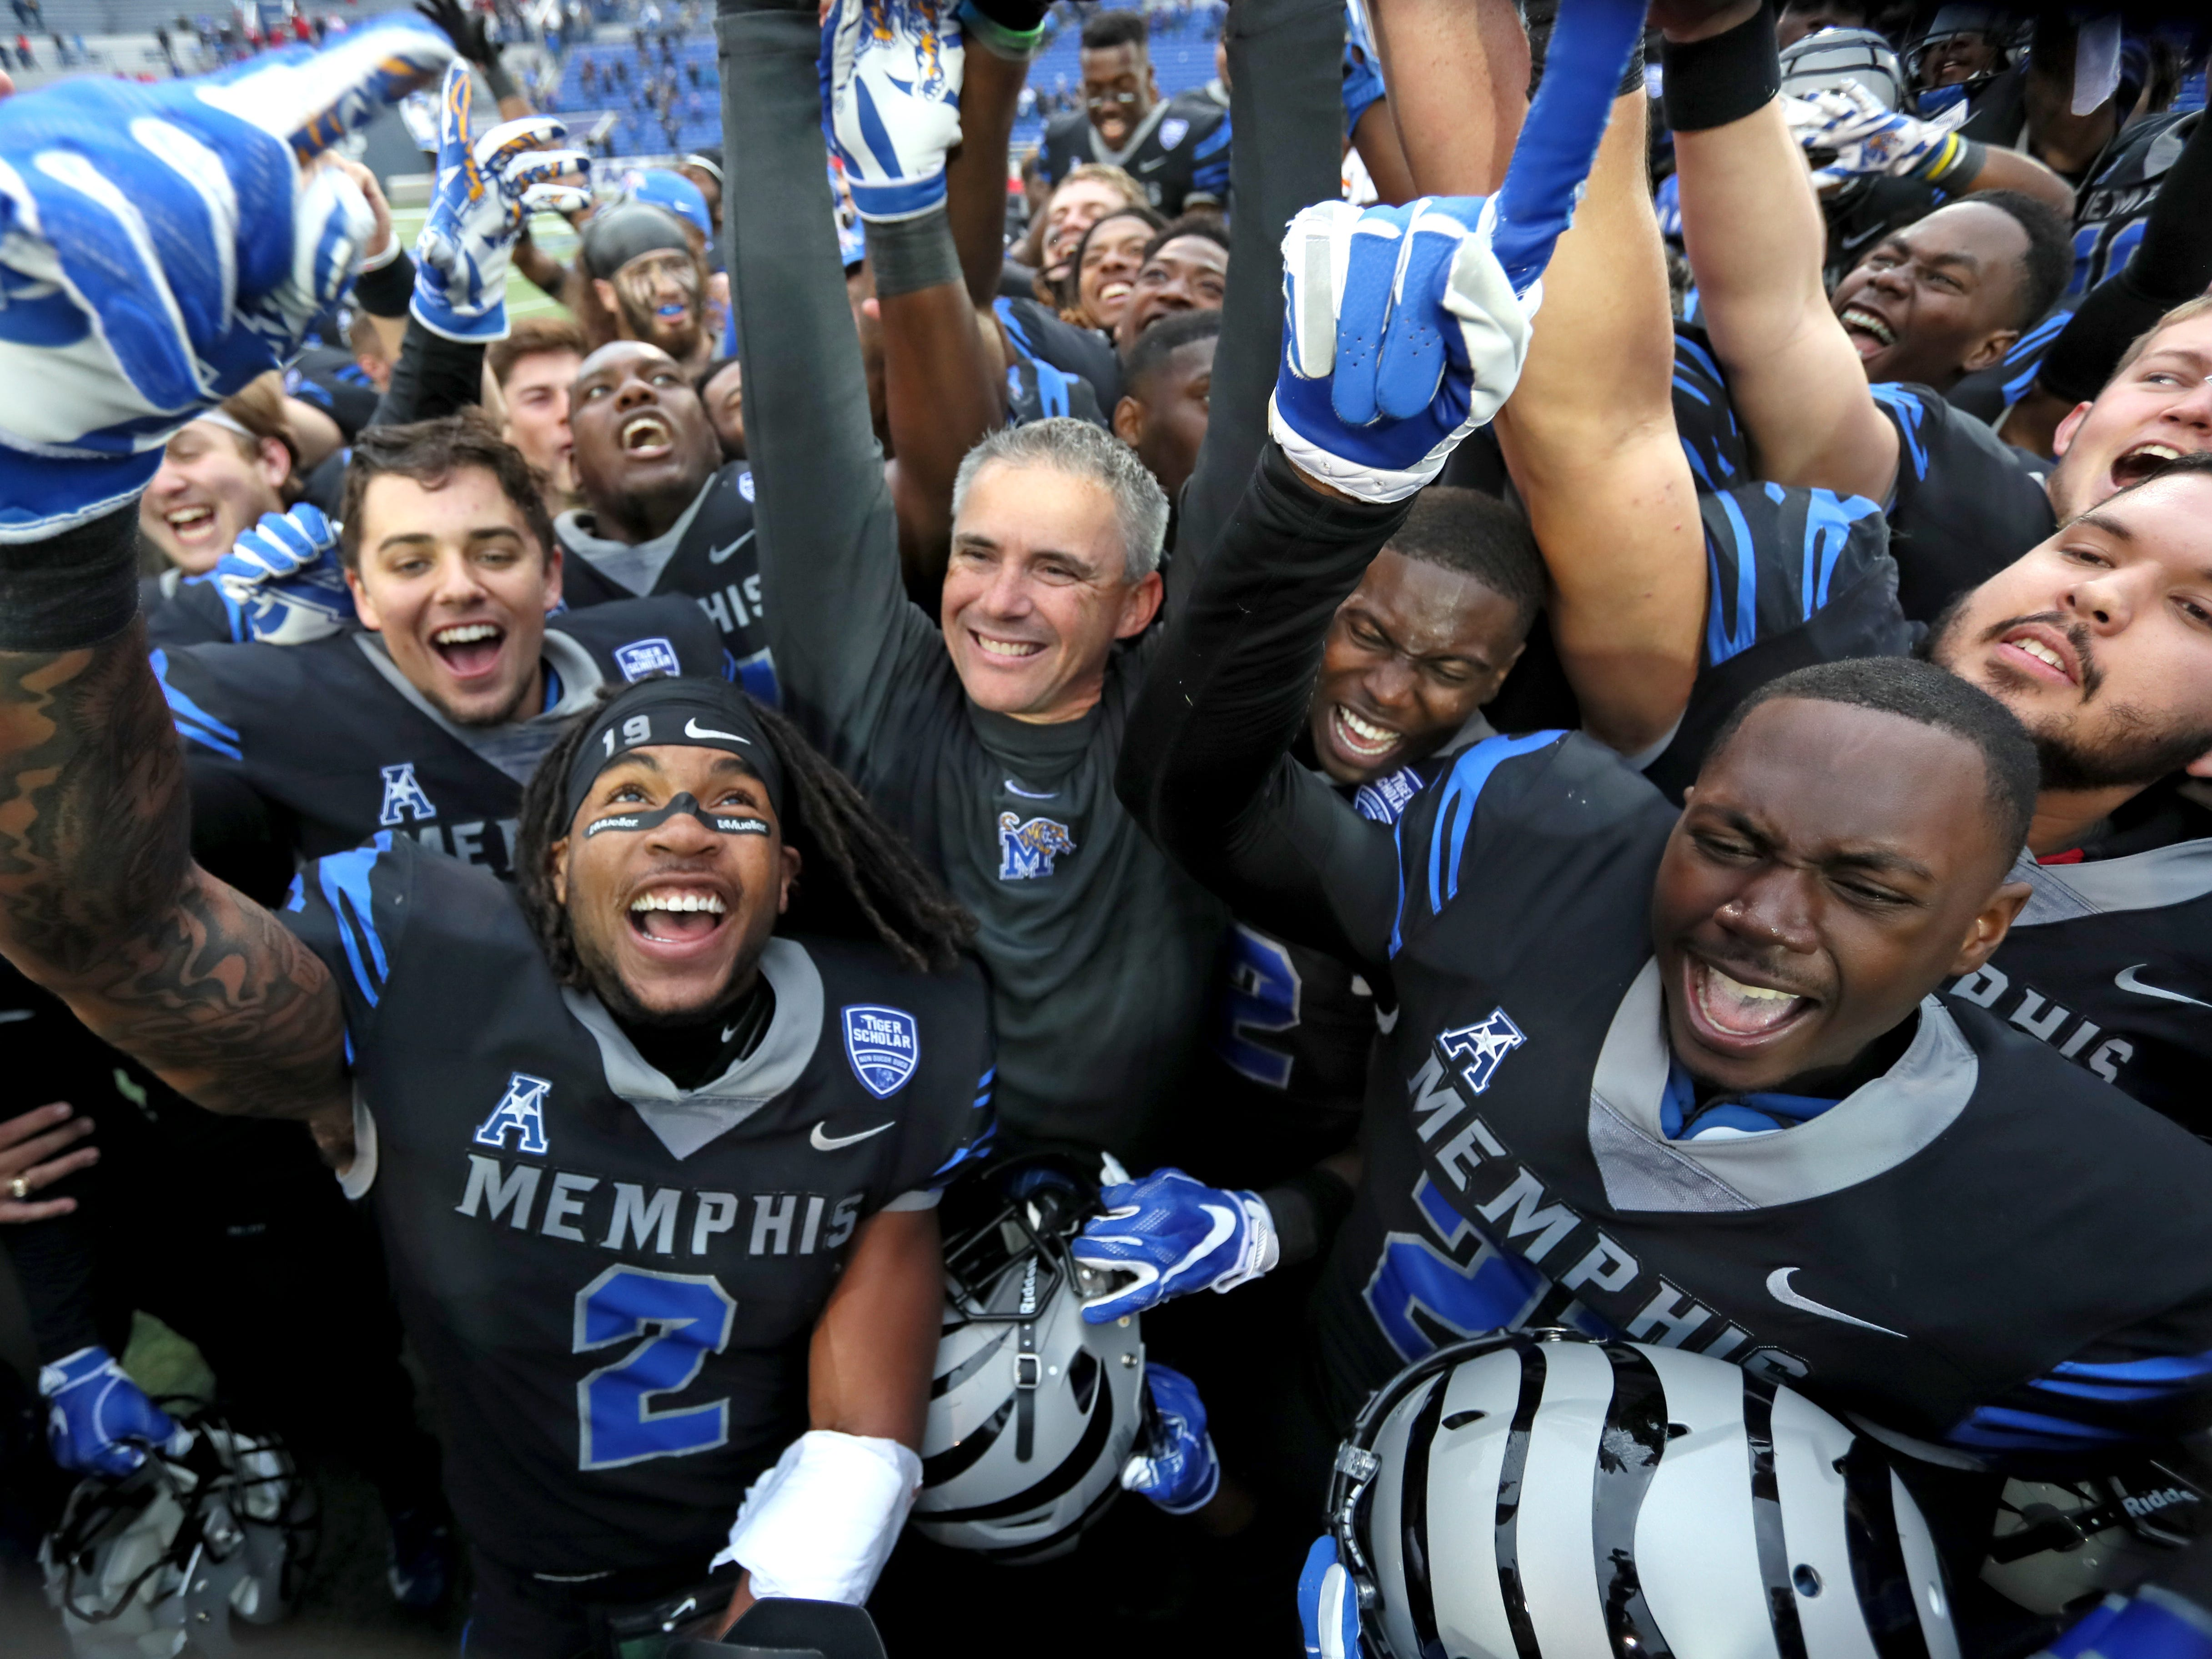 Memphis Head Coach Mike Norvell celebrates with his team as they defeat the Houston Cougars to win the AAC West title 52-31 at the Liberty Bowl on Friday, Nov. 23, 2018.